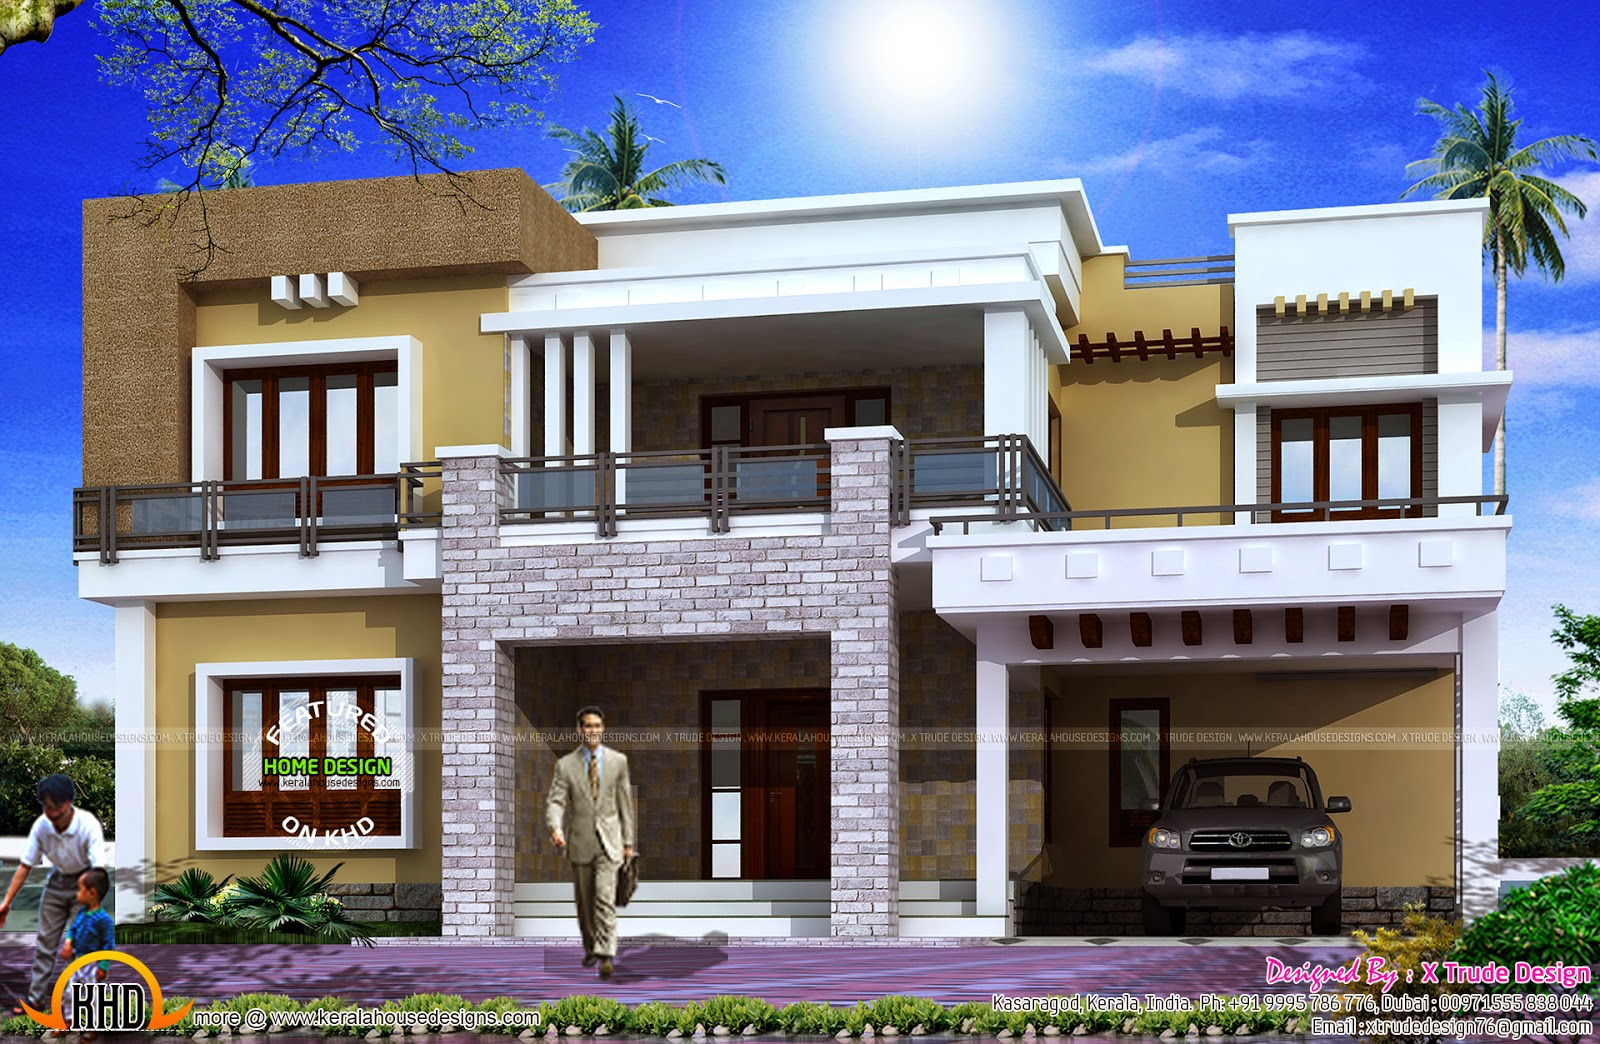 Keralahousedesigns july 2015 for Small frontage house designs